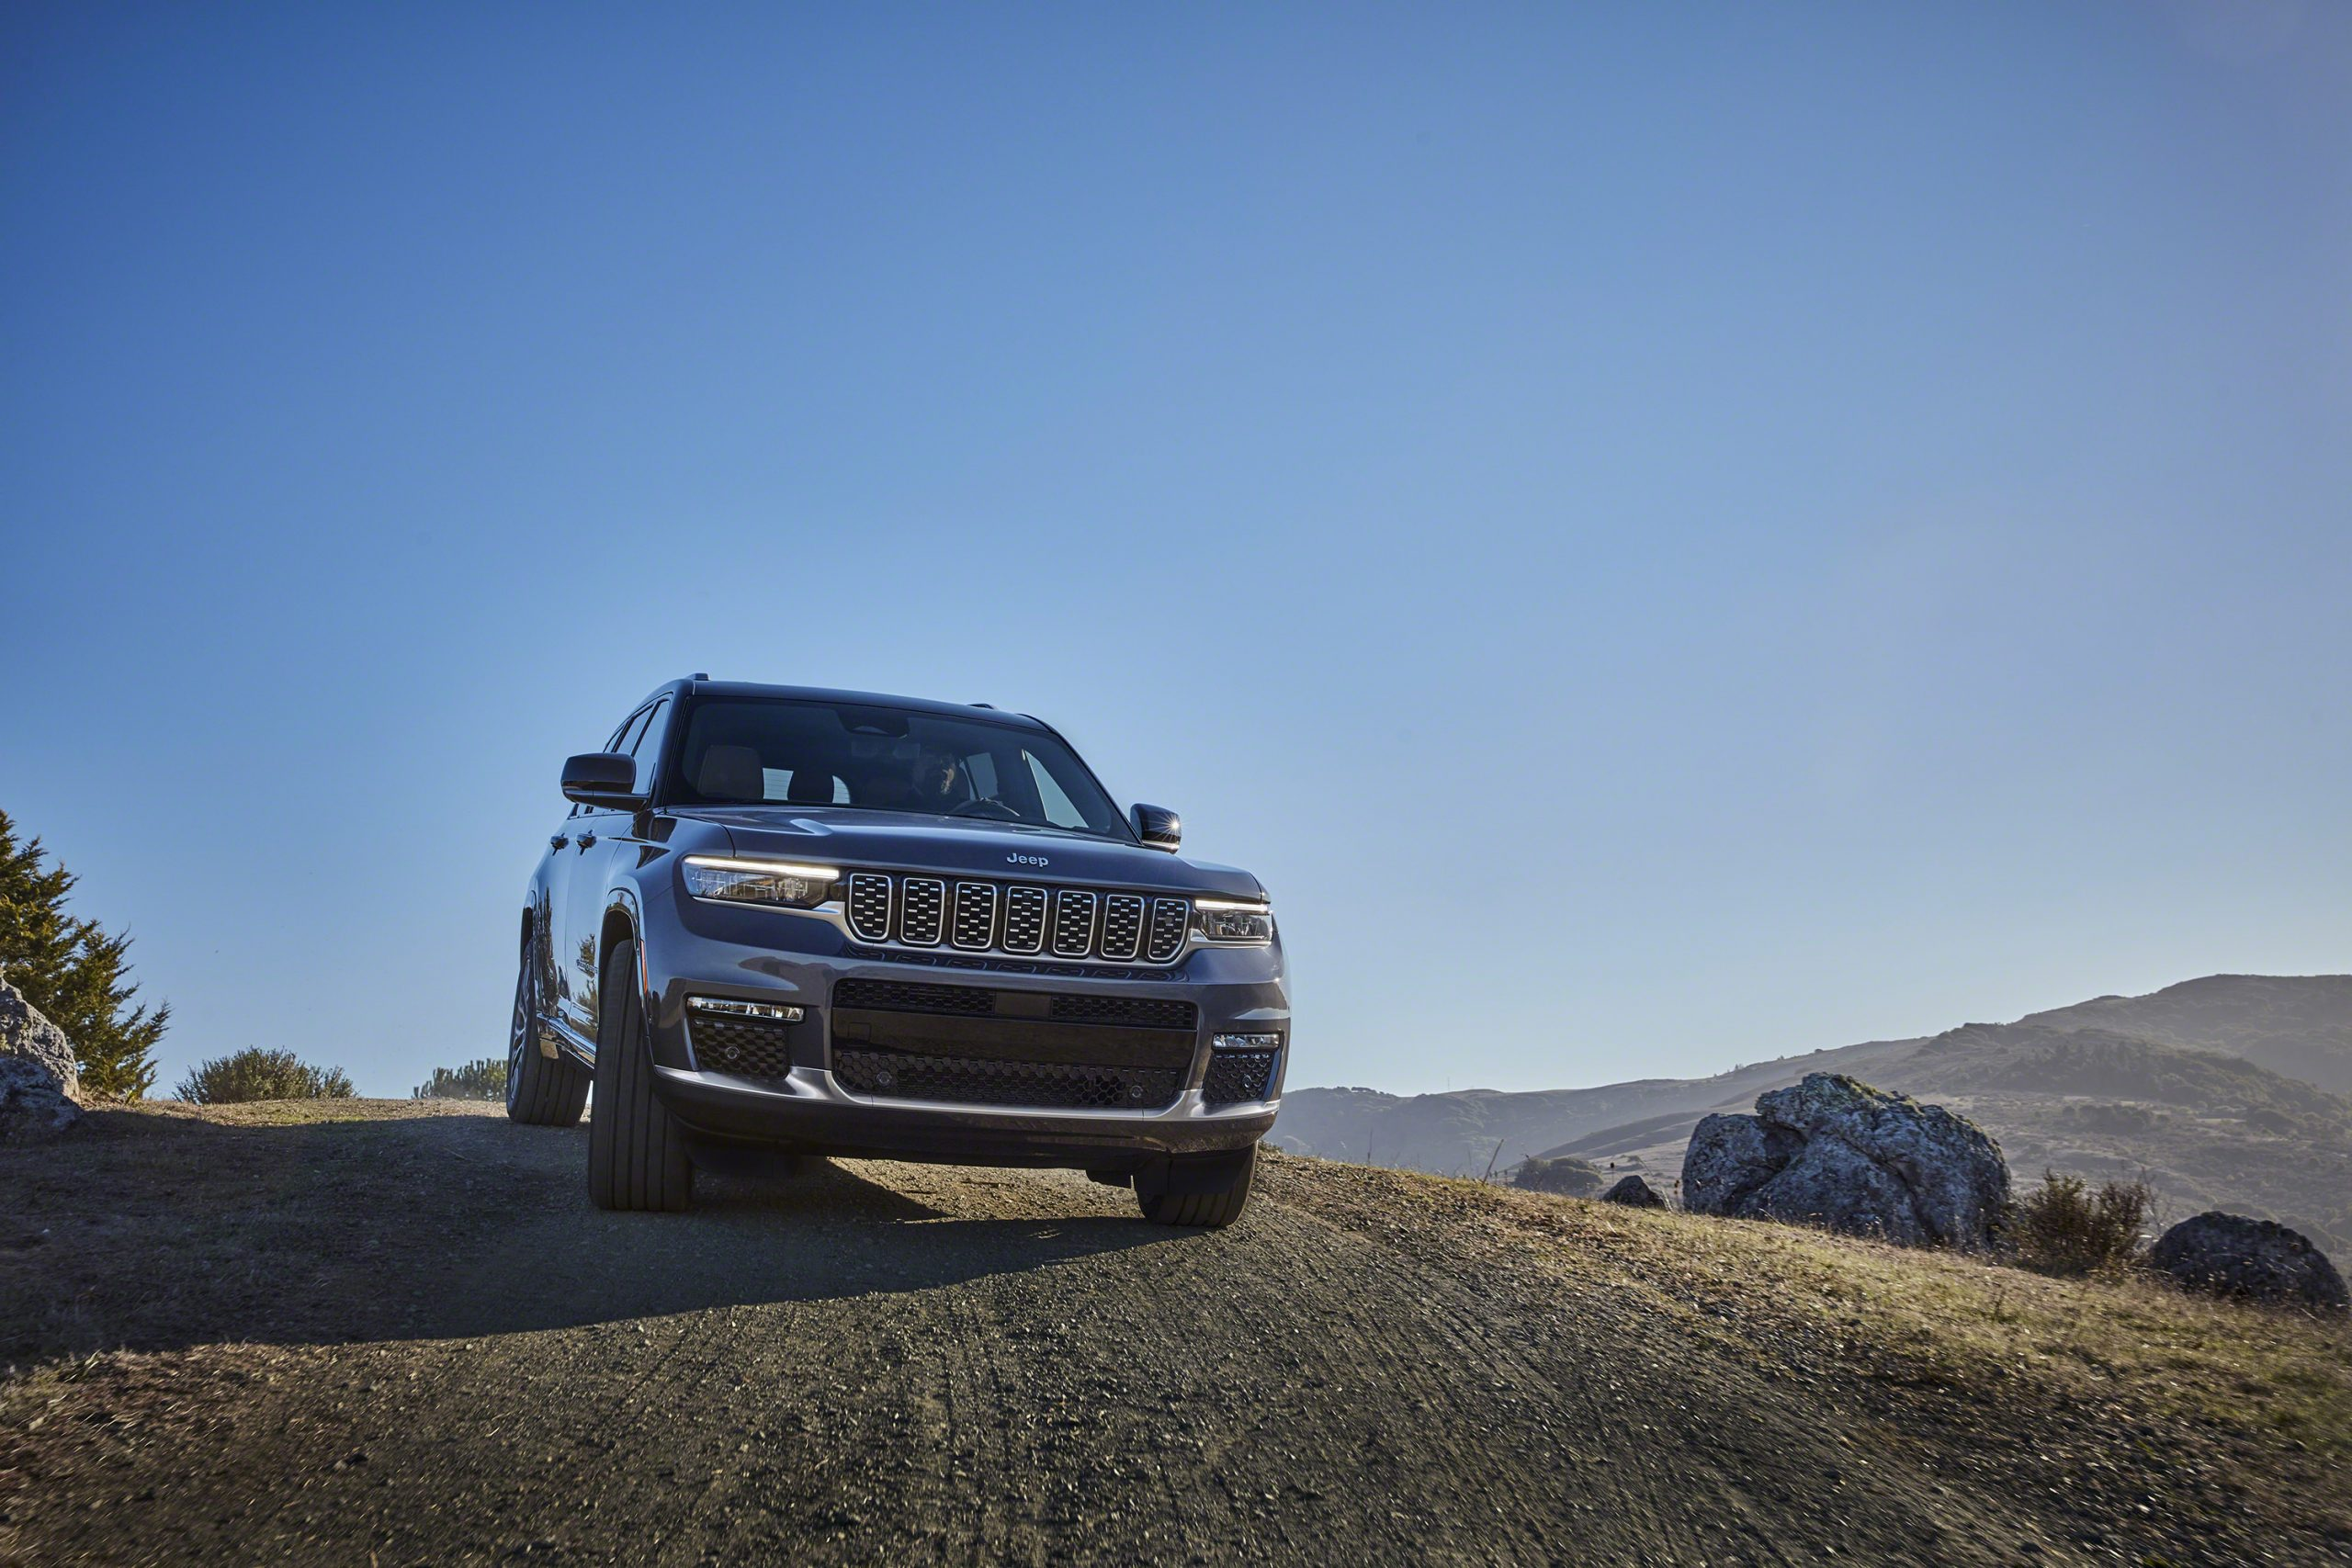 Jeep Grand Cherokee L Summit Reserve front descent